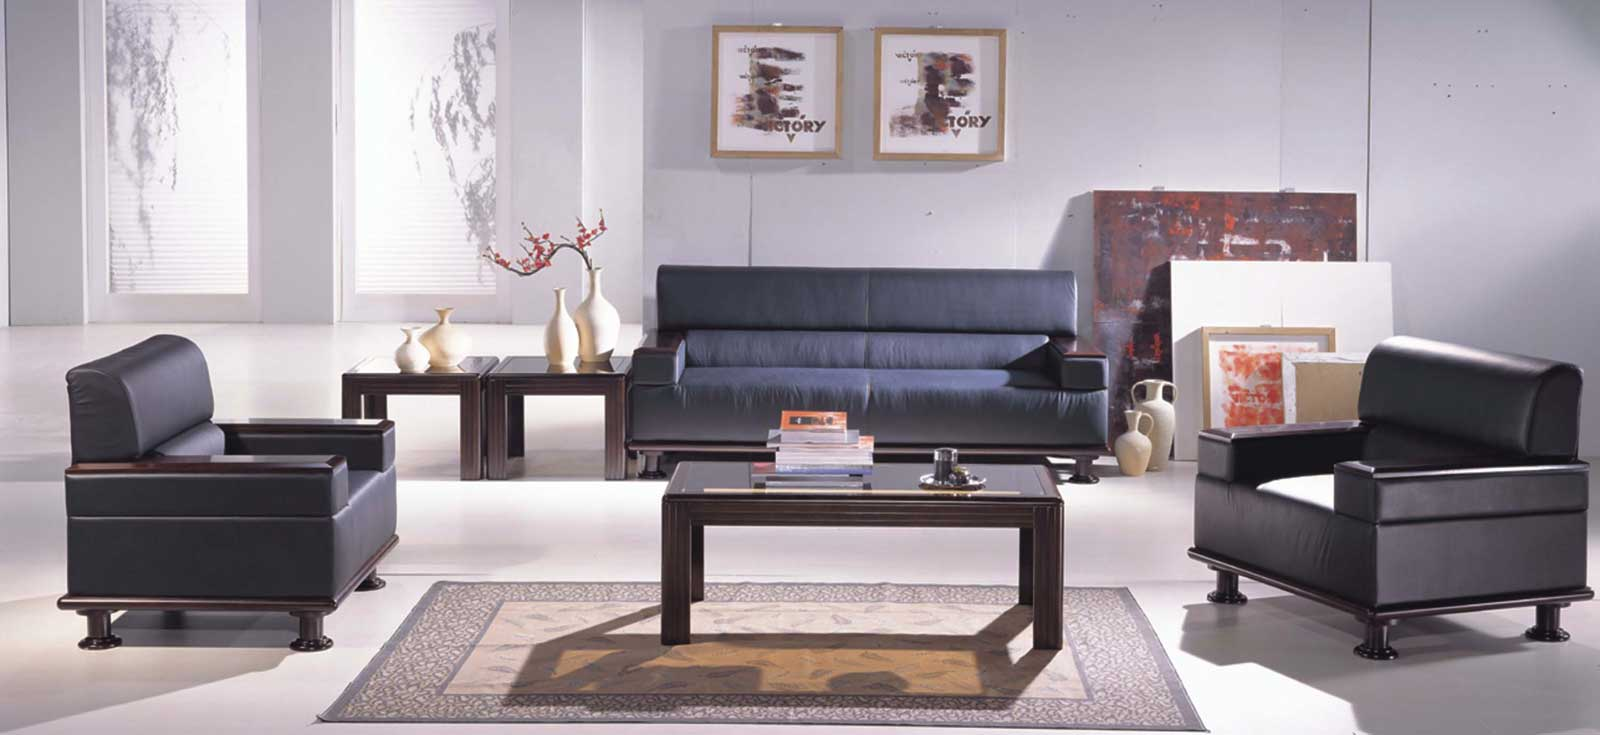 Black leather office furniture sofa style